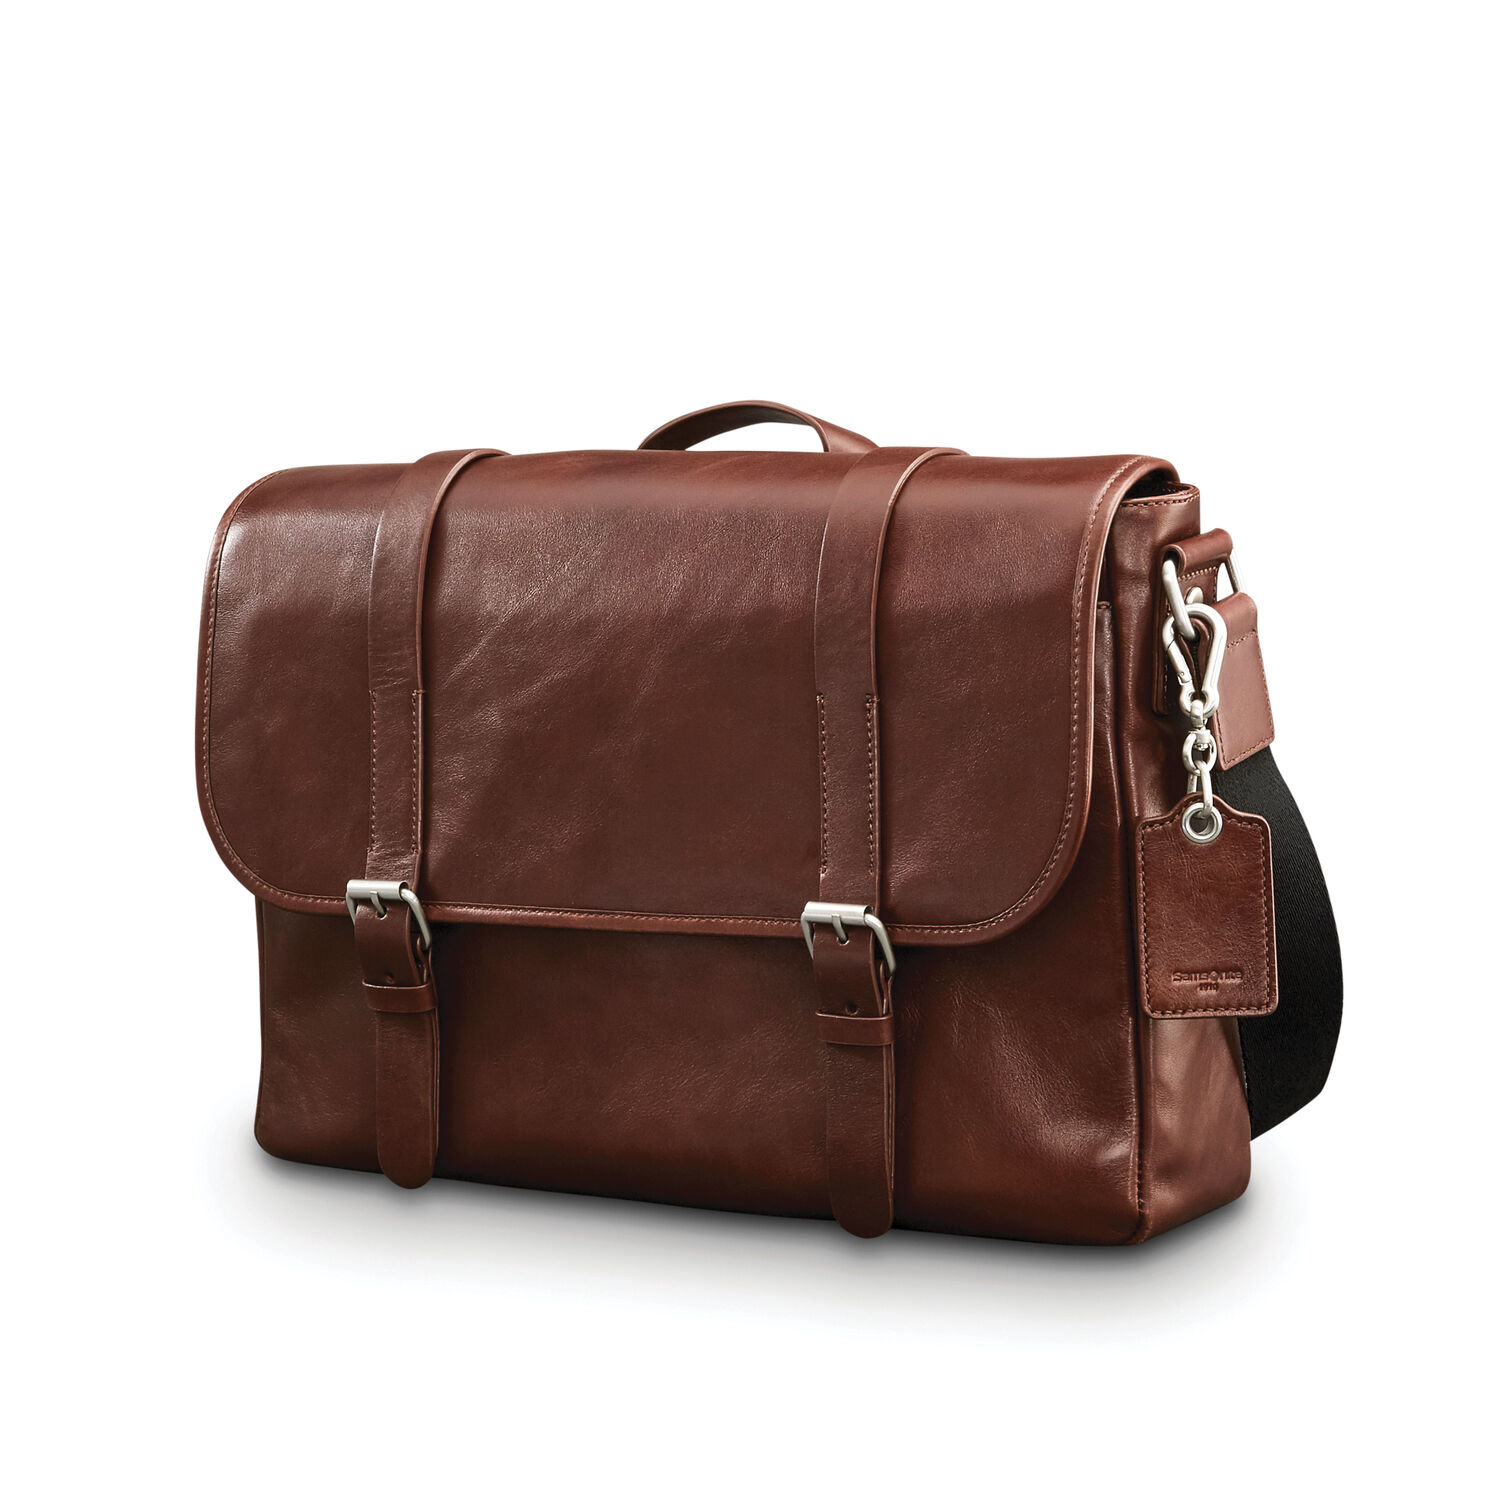 Samsonite Mens Leather 1910 Heritage Messenger in the color Chestnut.